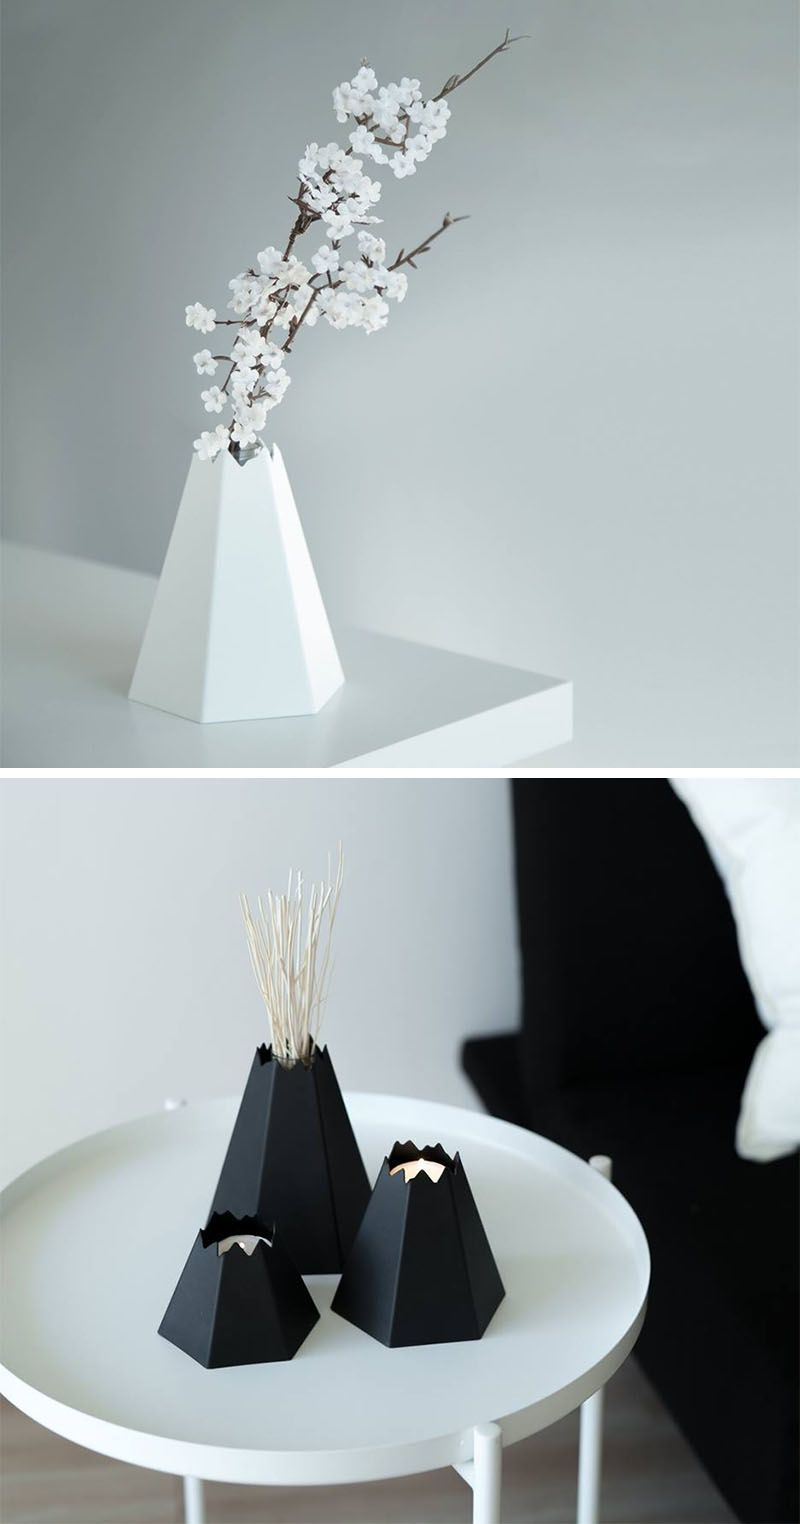 Origami Inspired The Design Of These Small Home Decor Items